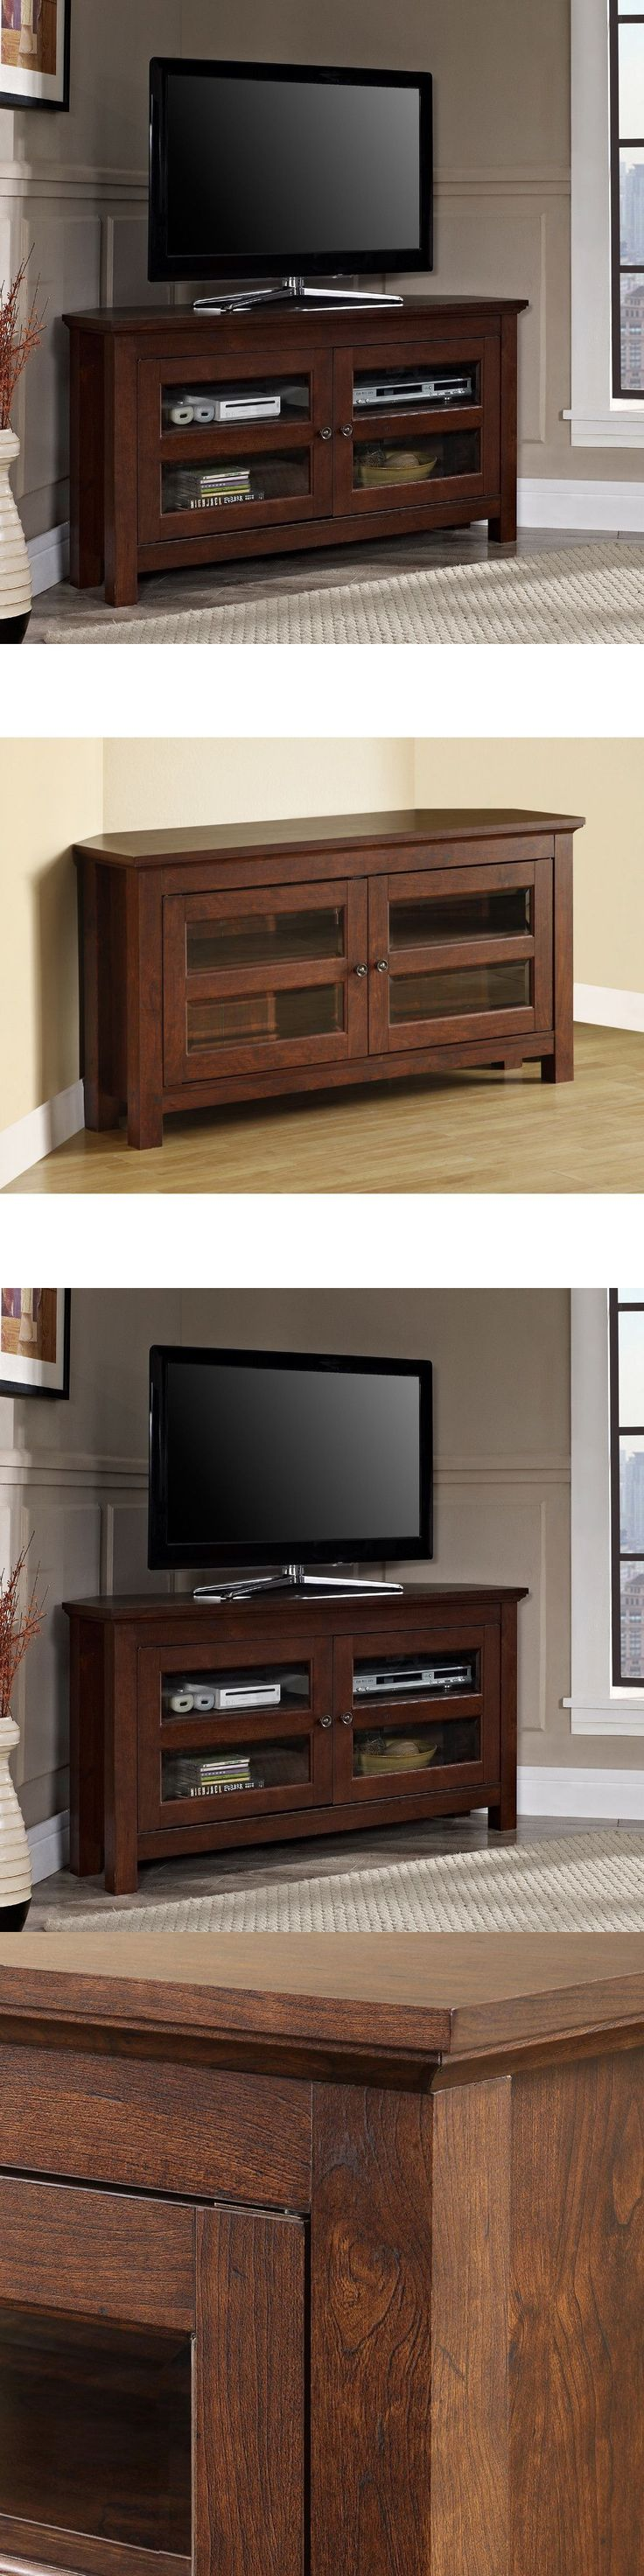 Entertainment Units TV Stands 20488: Tv Stand Corner Entertainment Center Brown Living Room Furniture Wood Glass Door -> BUY IT NOW ONLY: $143.03 on eBay!